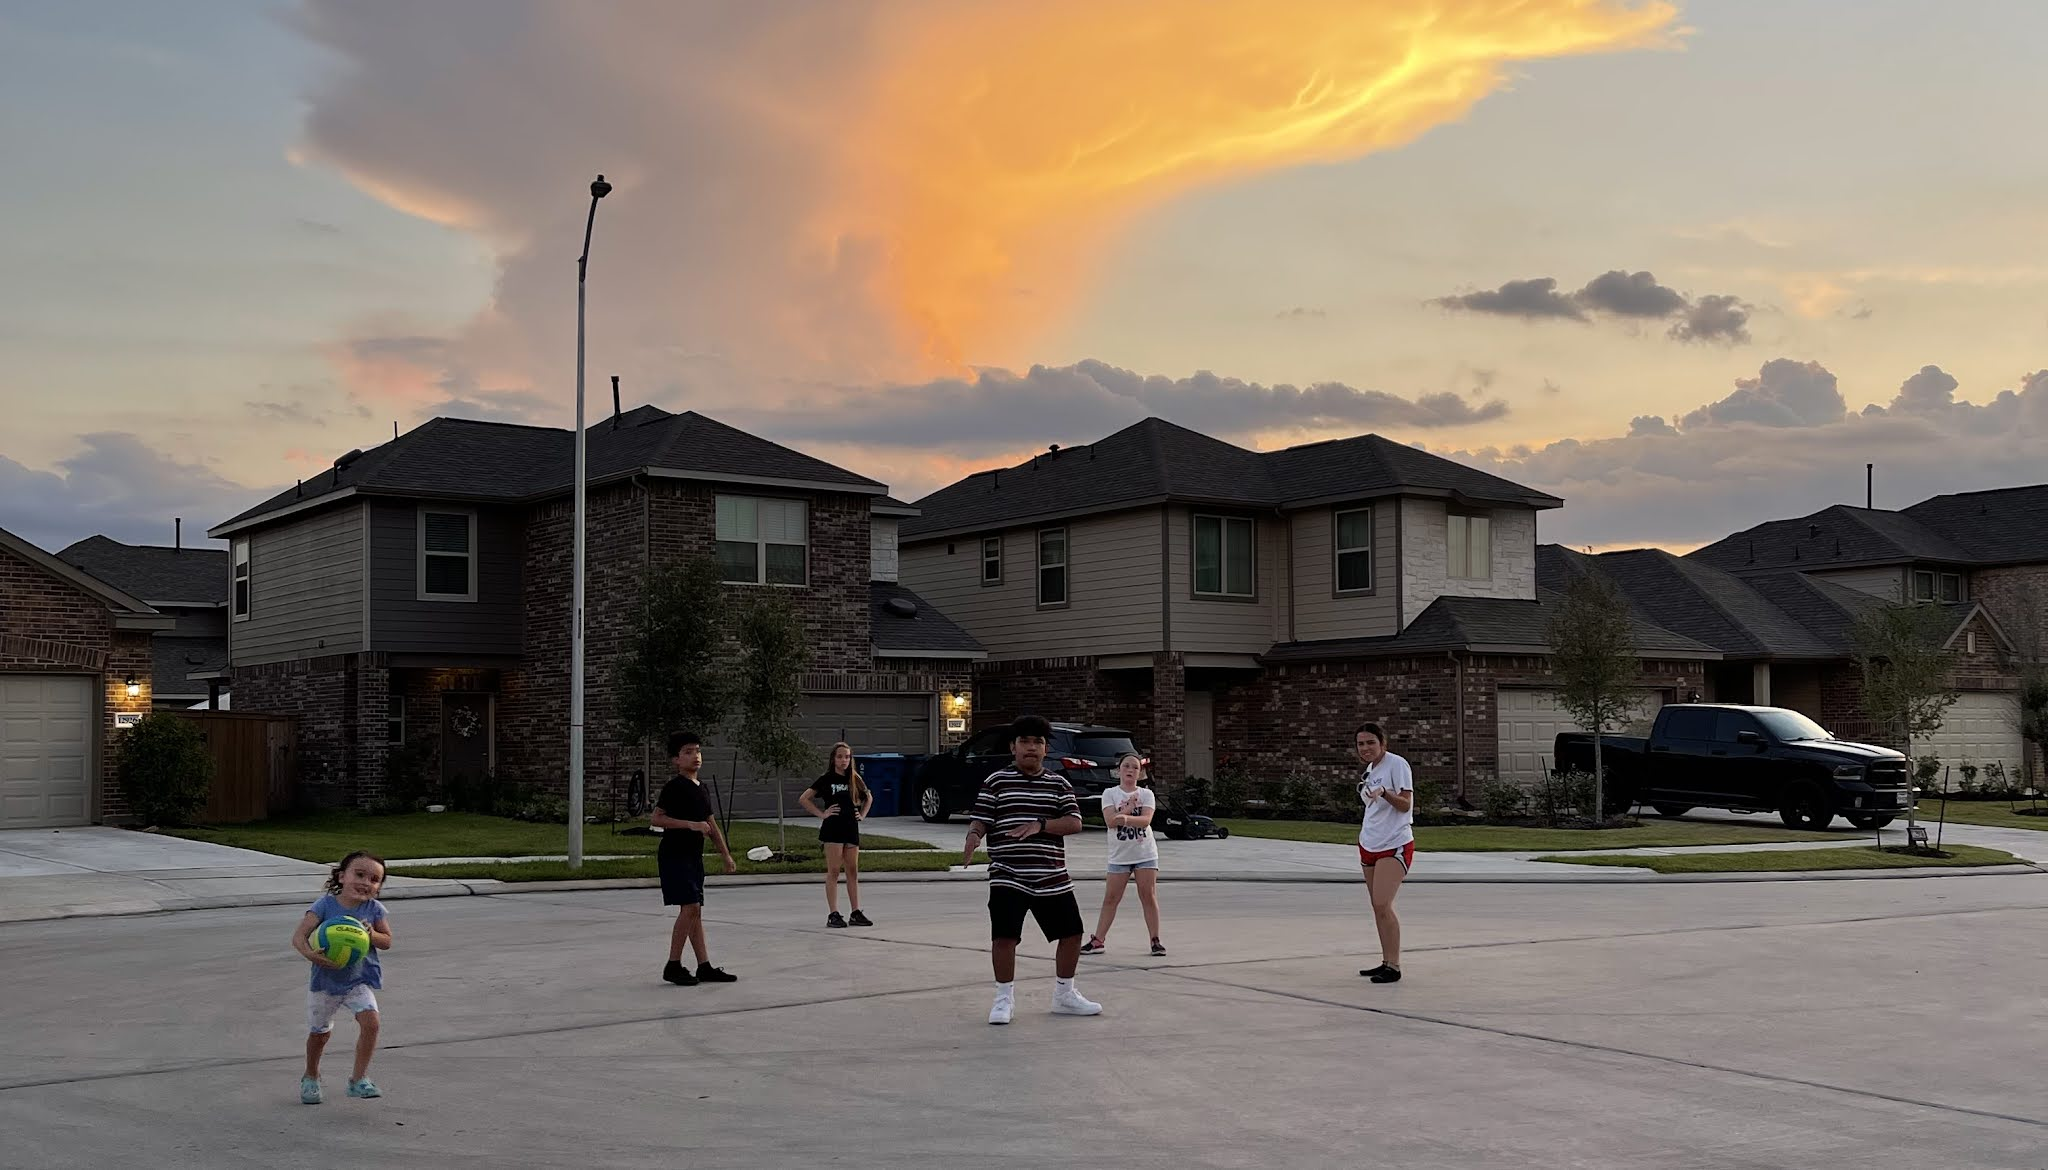 Summer nights in the streets